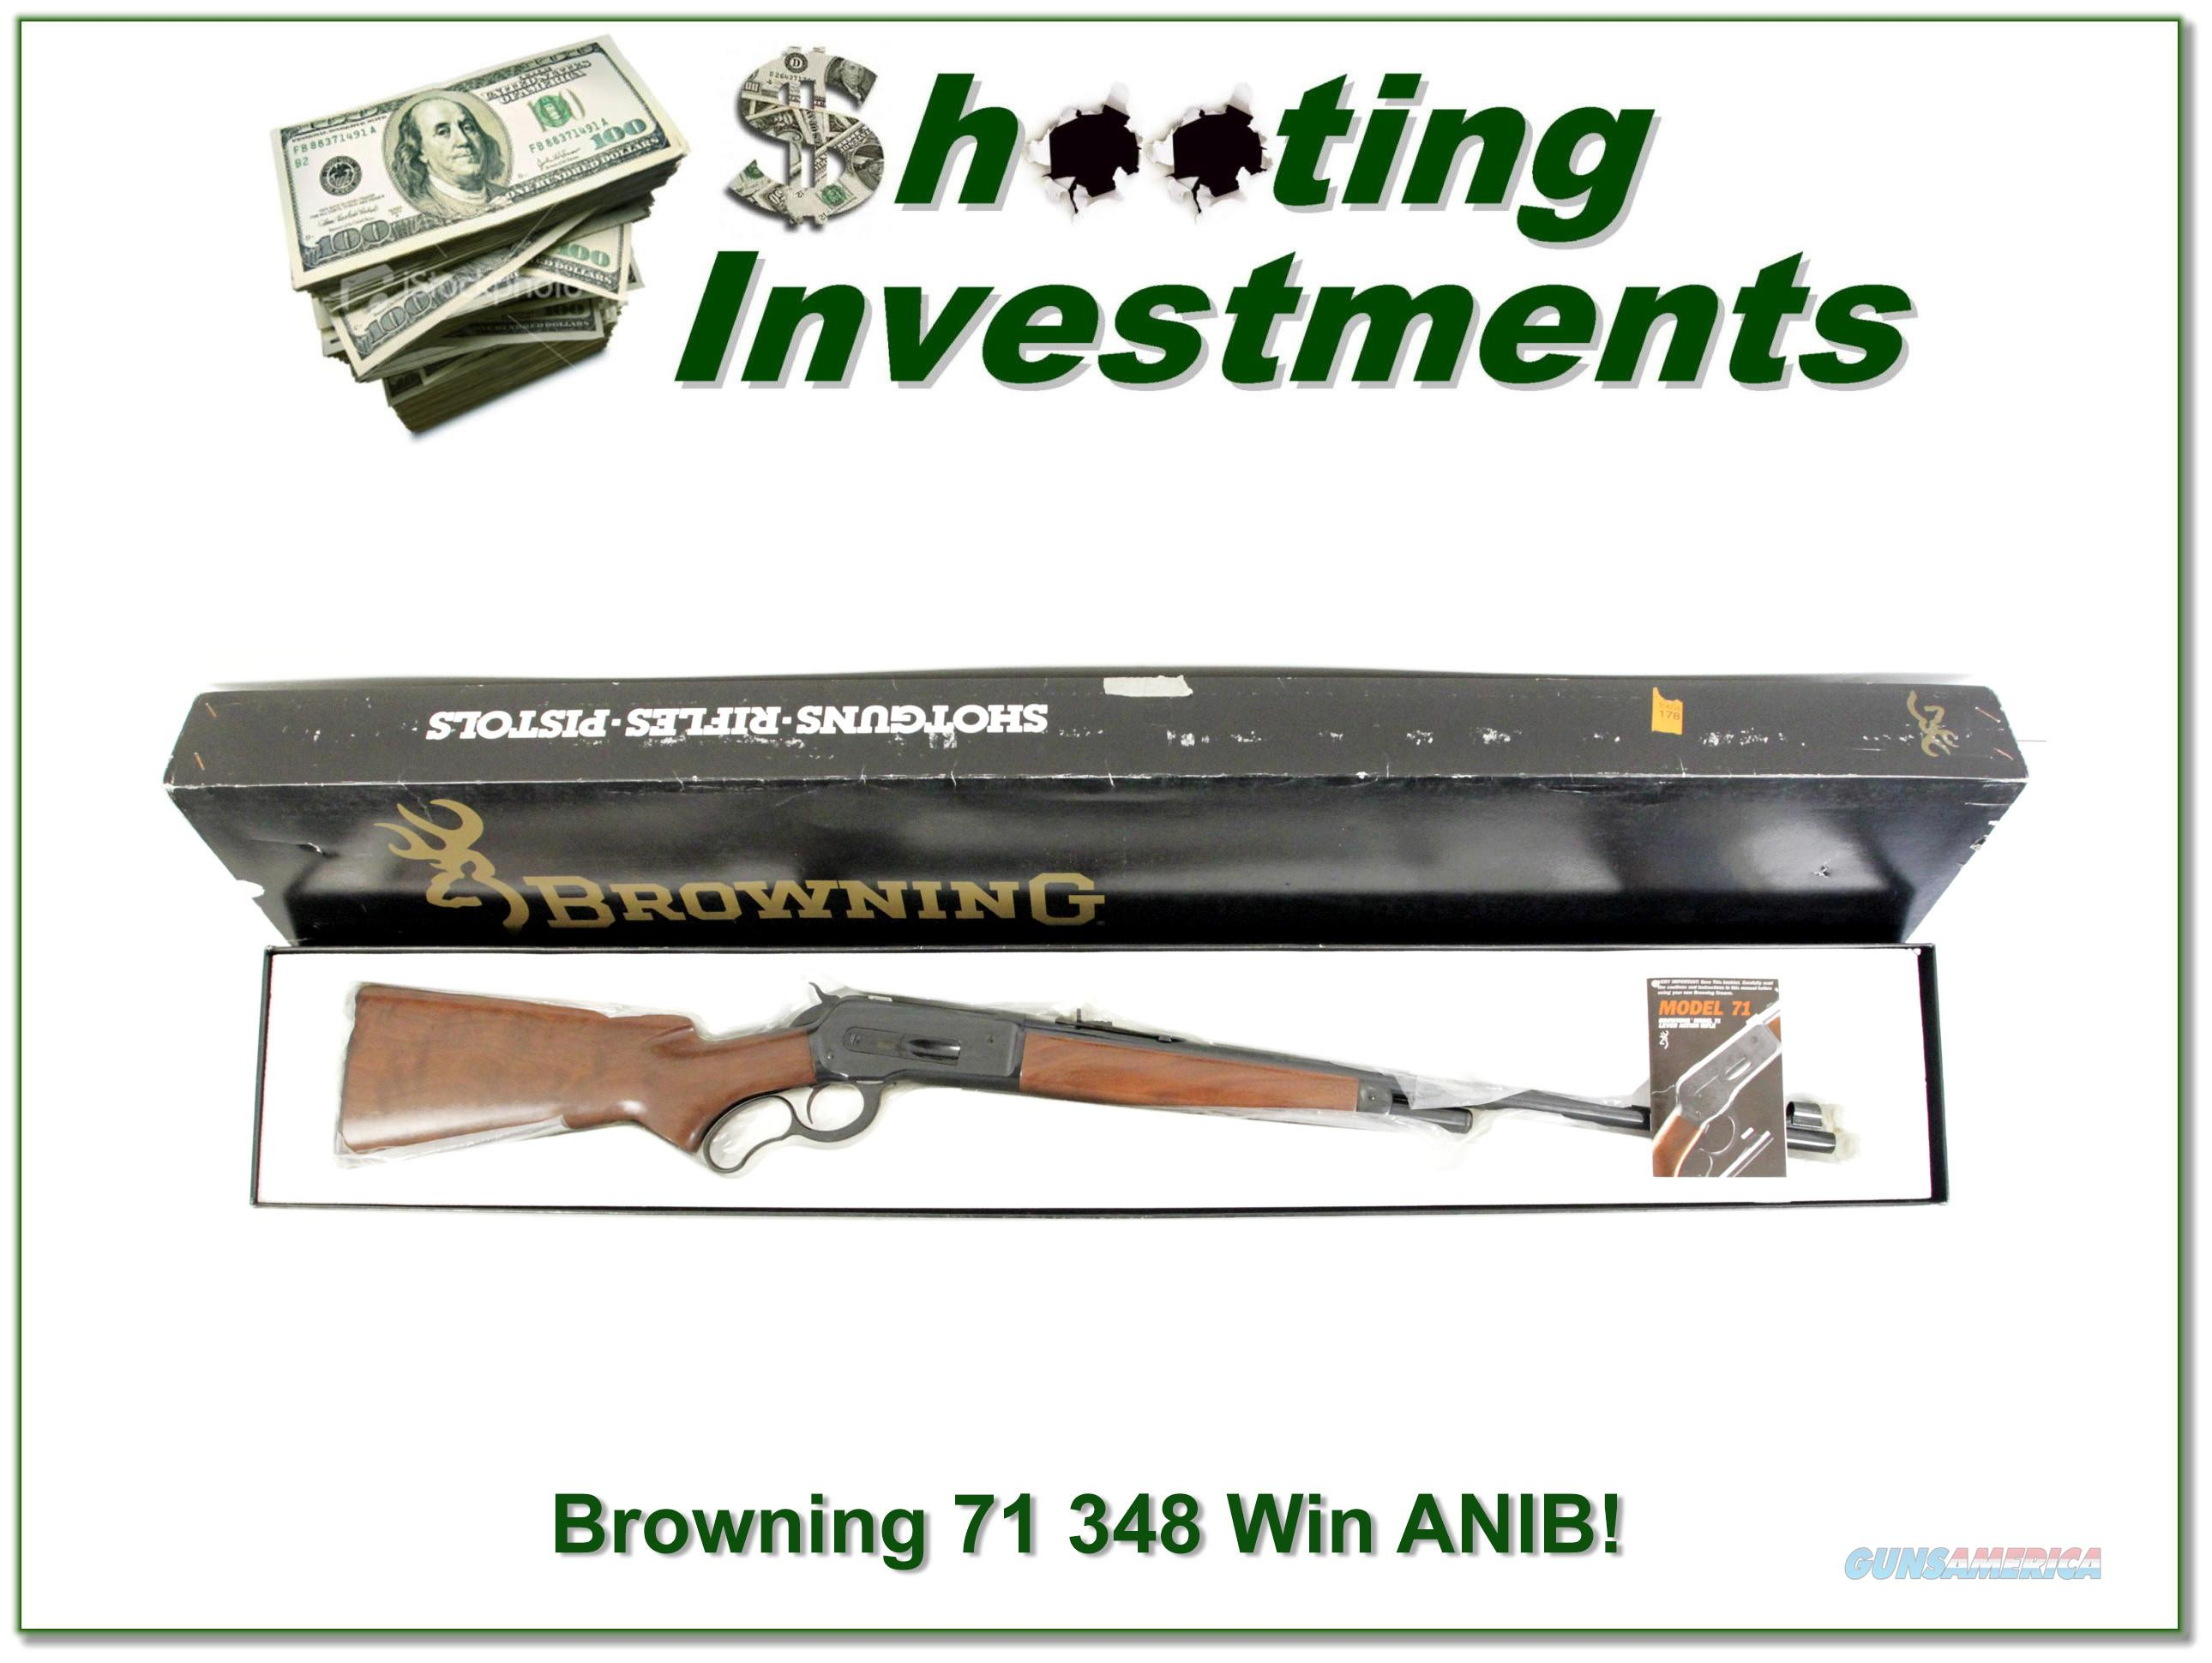 Browning Model 71 348 Win 24in rifle NIB!  Guns > Rifles > Browning Rifles > Lever Action